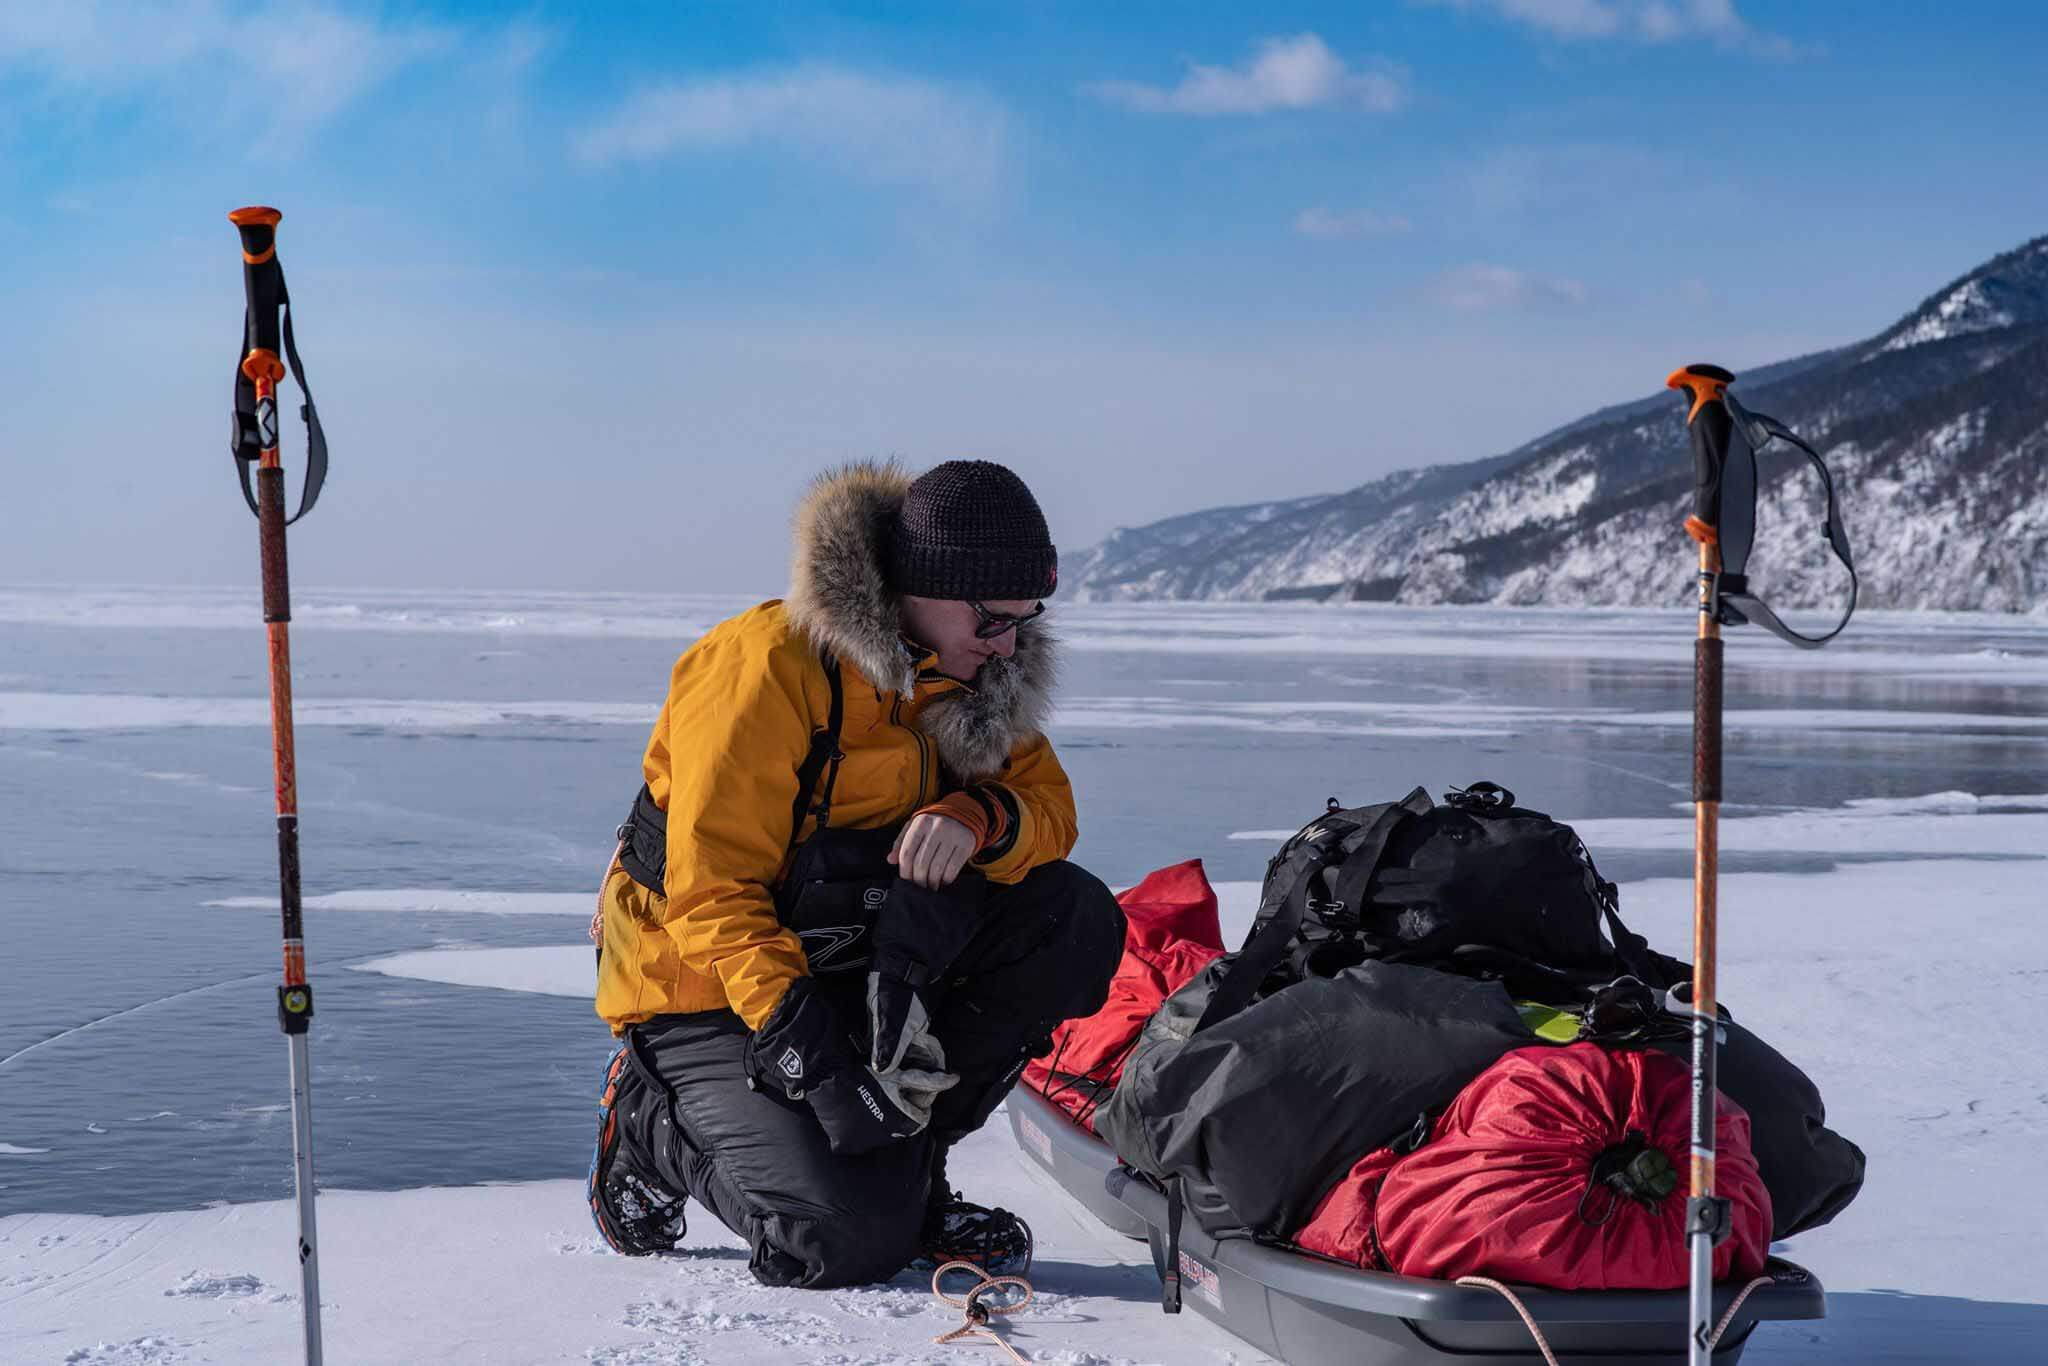 HOKA fan Rob Trigwell takes a break on Lake Baikal